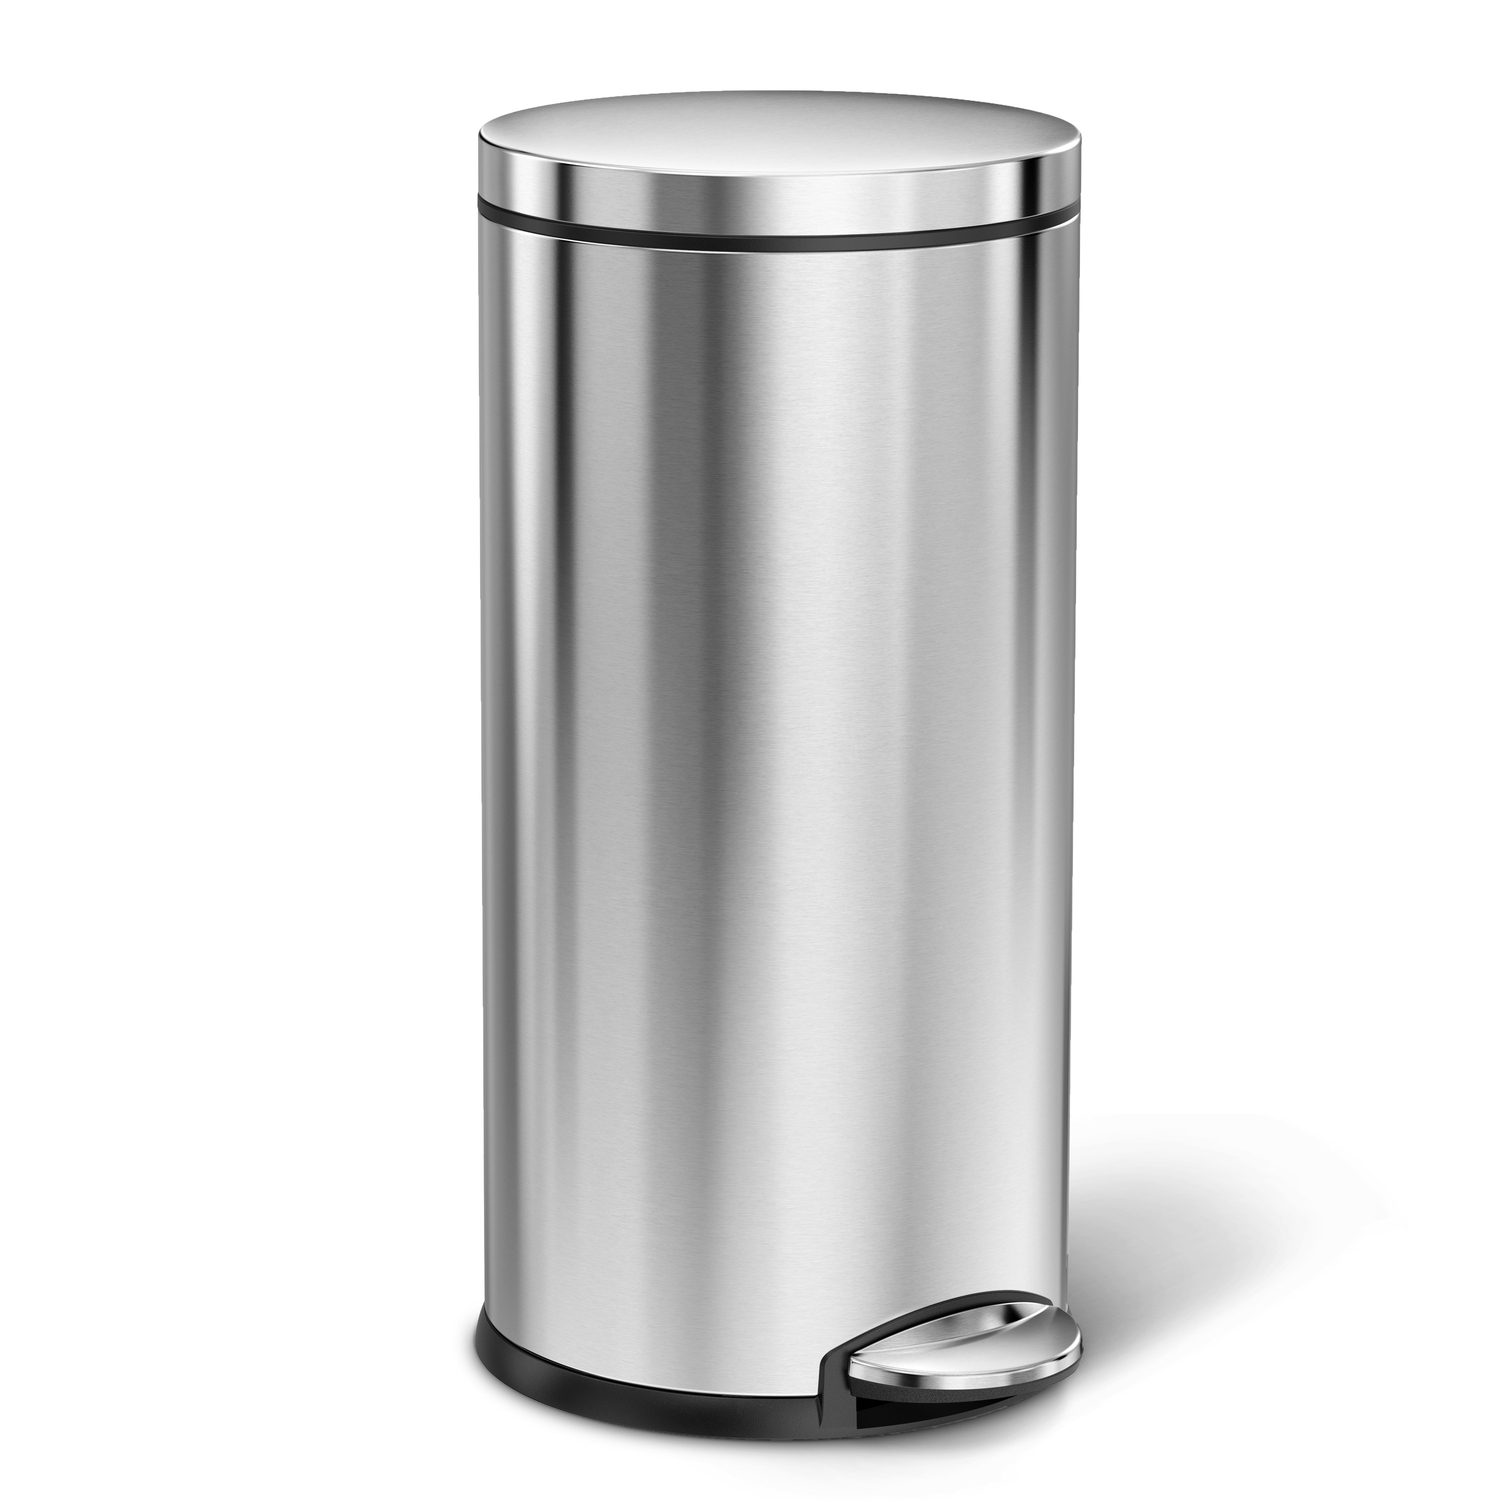 Silver Trash Cans Upc 838810015217 Simplehuman Round Step Trash Can